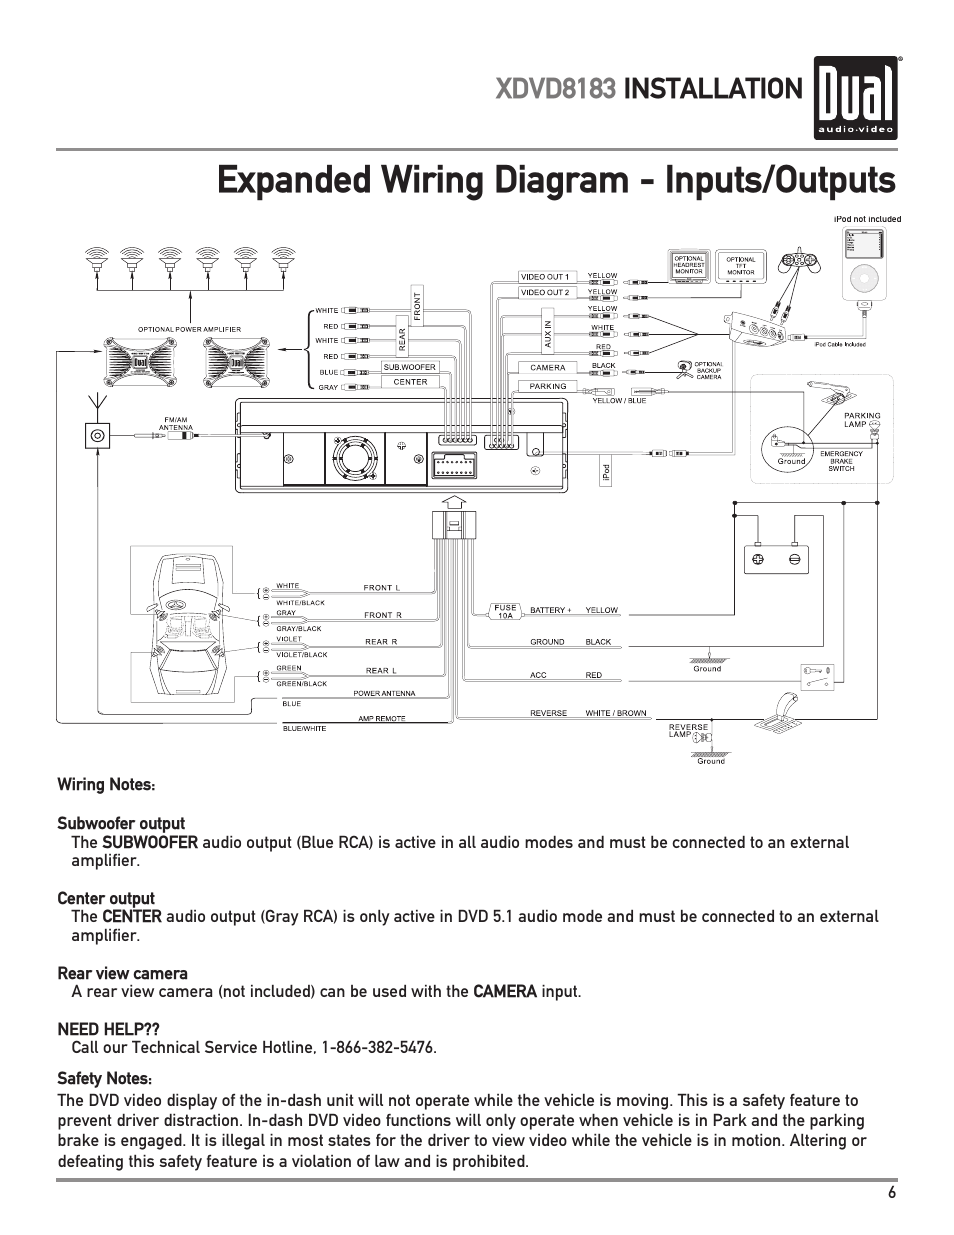 medium resolution of expanded wiring diagram inputs outputs xdvd8183 installationexpanded wiring diagram inputs outputs xdvd8183 installation dual